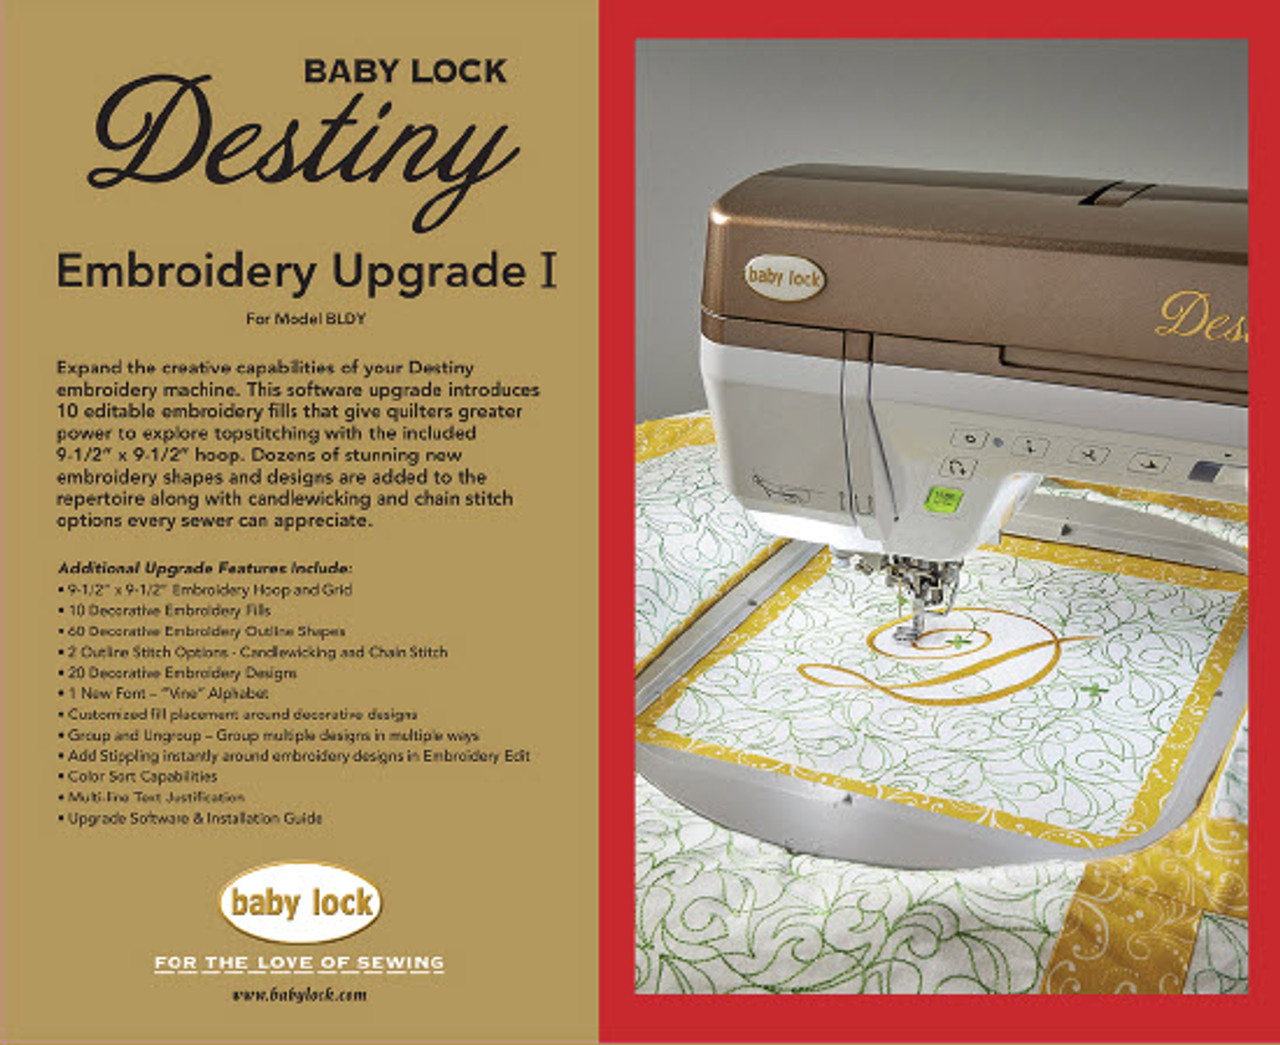 Destiny Embroidery Upgrade I - Phil's Sewing Machines